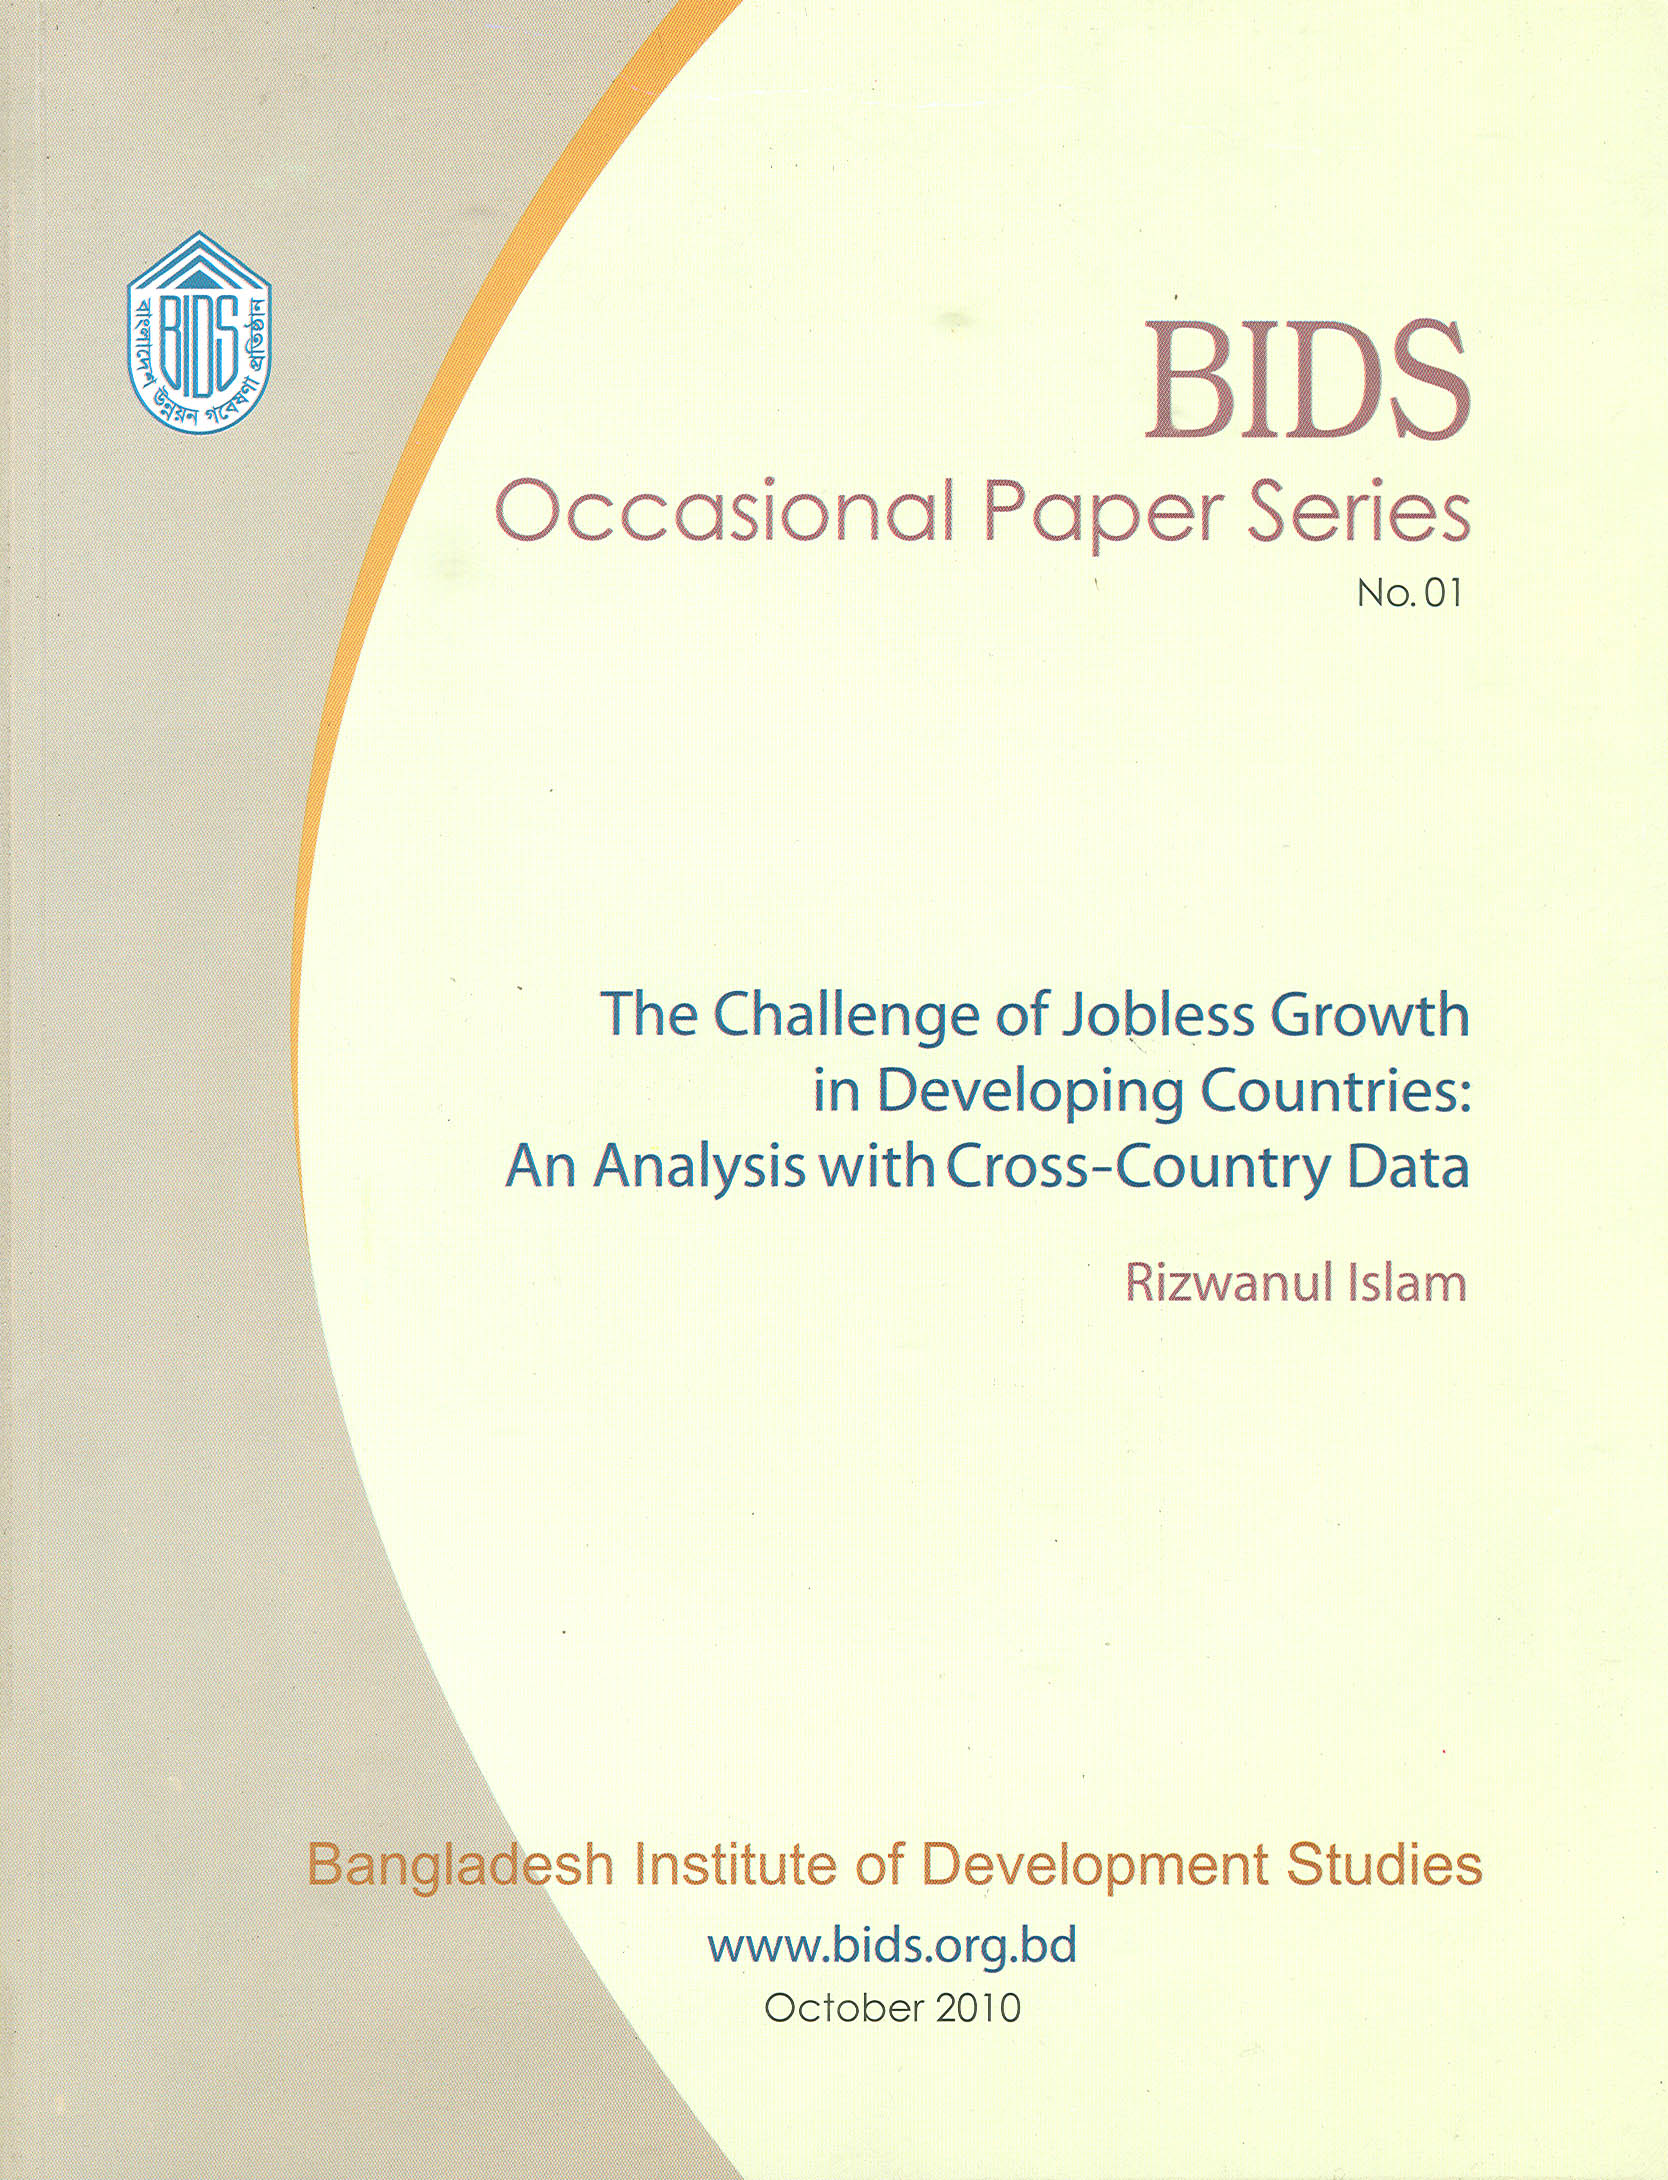 The Challenge of Jobless Growth in Developing Countries: An Analysis with Cross-Country Data BIDS Occasional Paper Series No.01